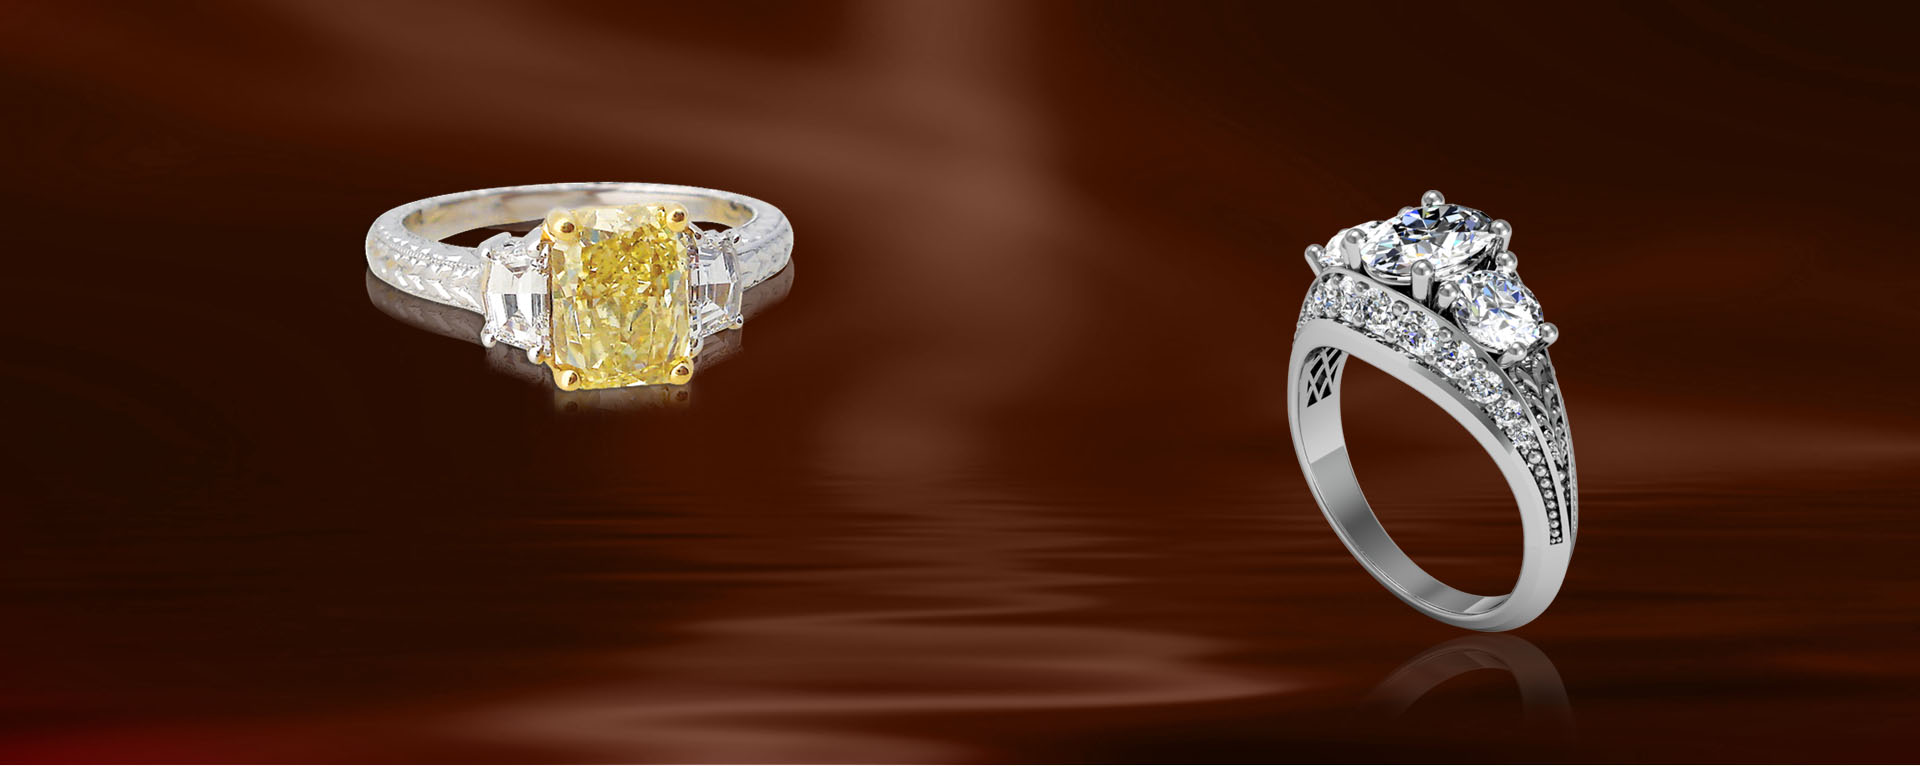 Image result for jeweler